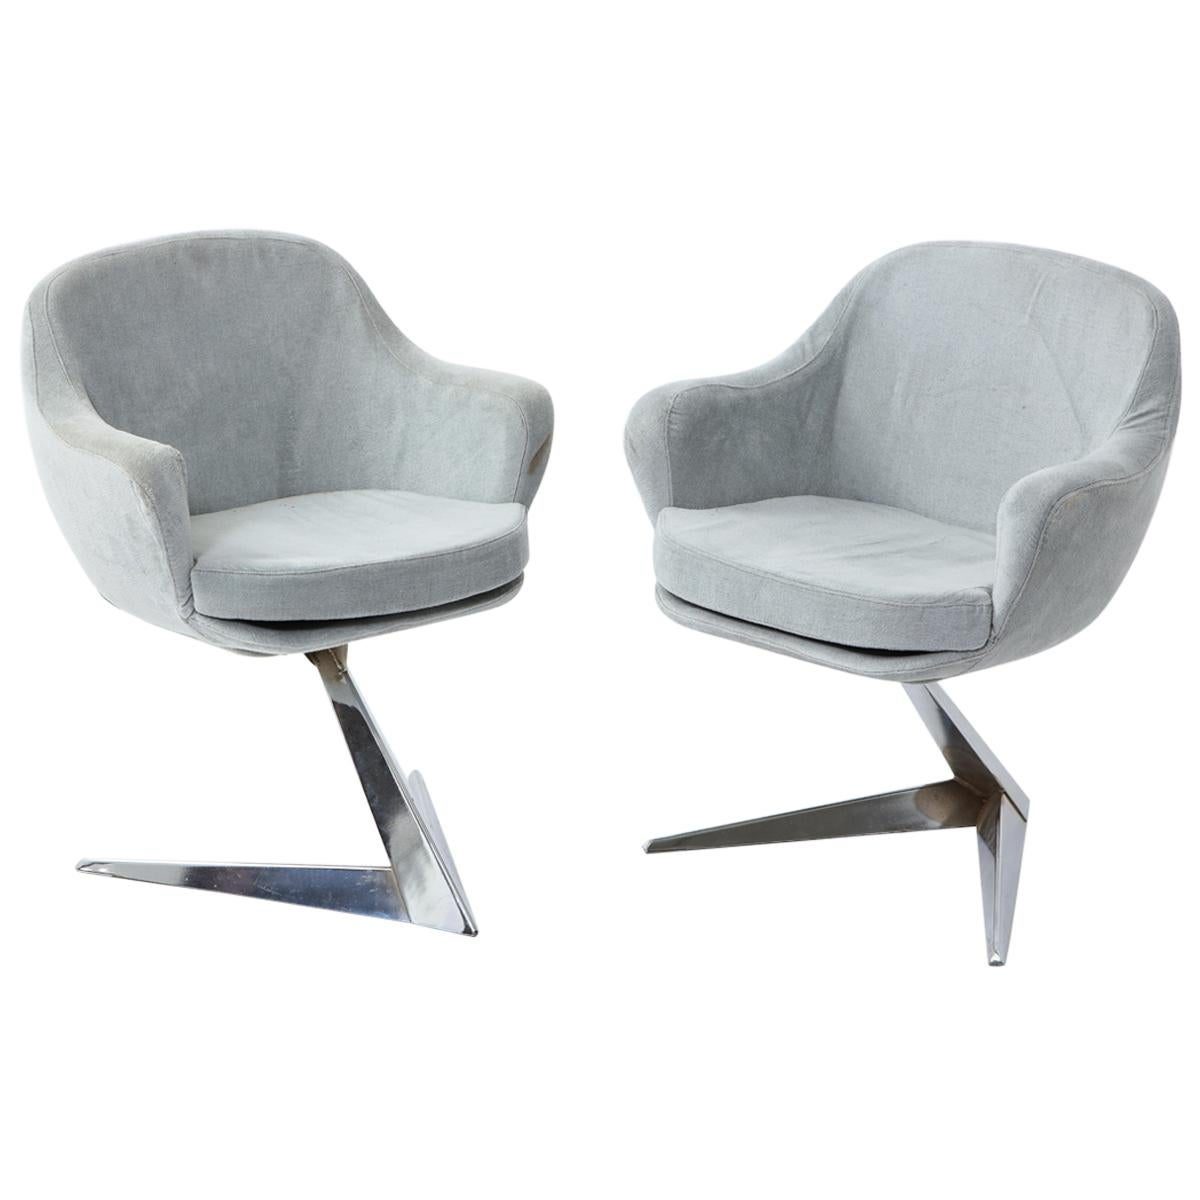 Jacques Adnet Chairs for Air France